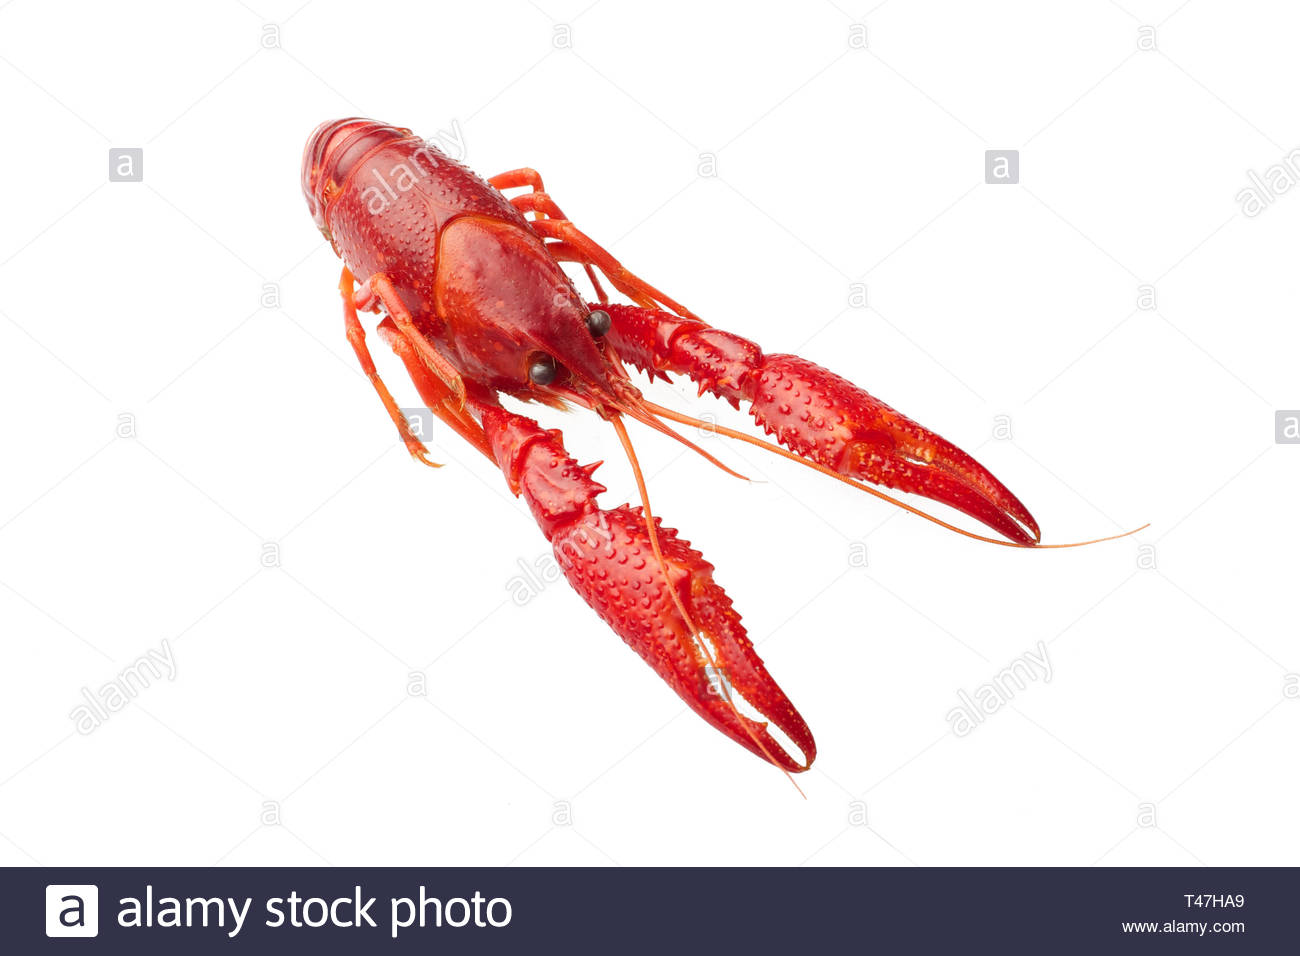 Boiled red crawfish isolated on white background Stock Photo 1300x956